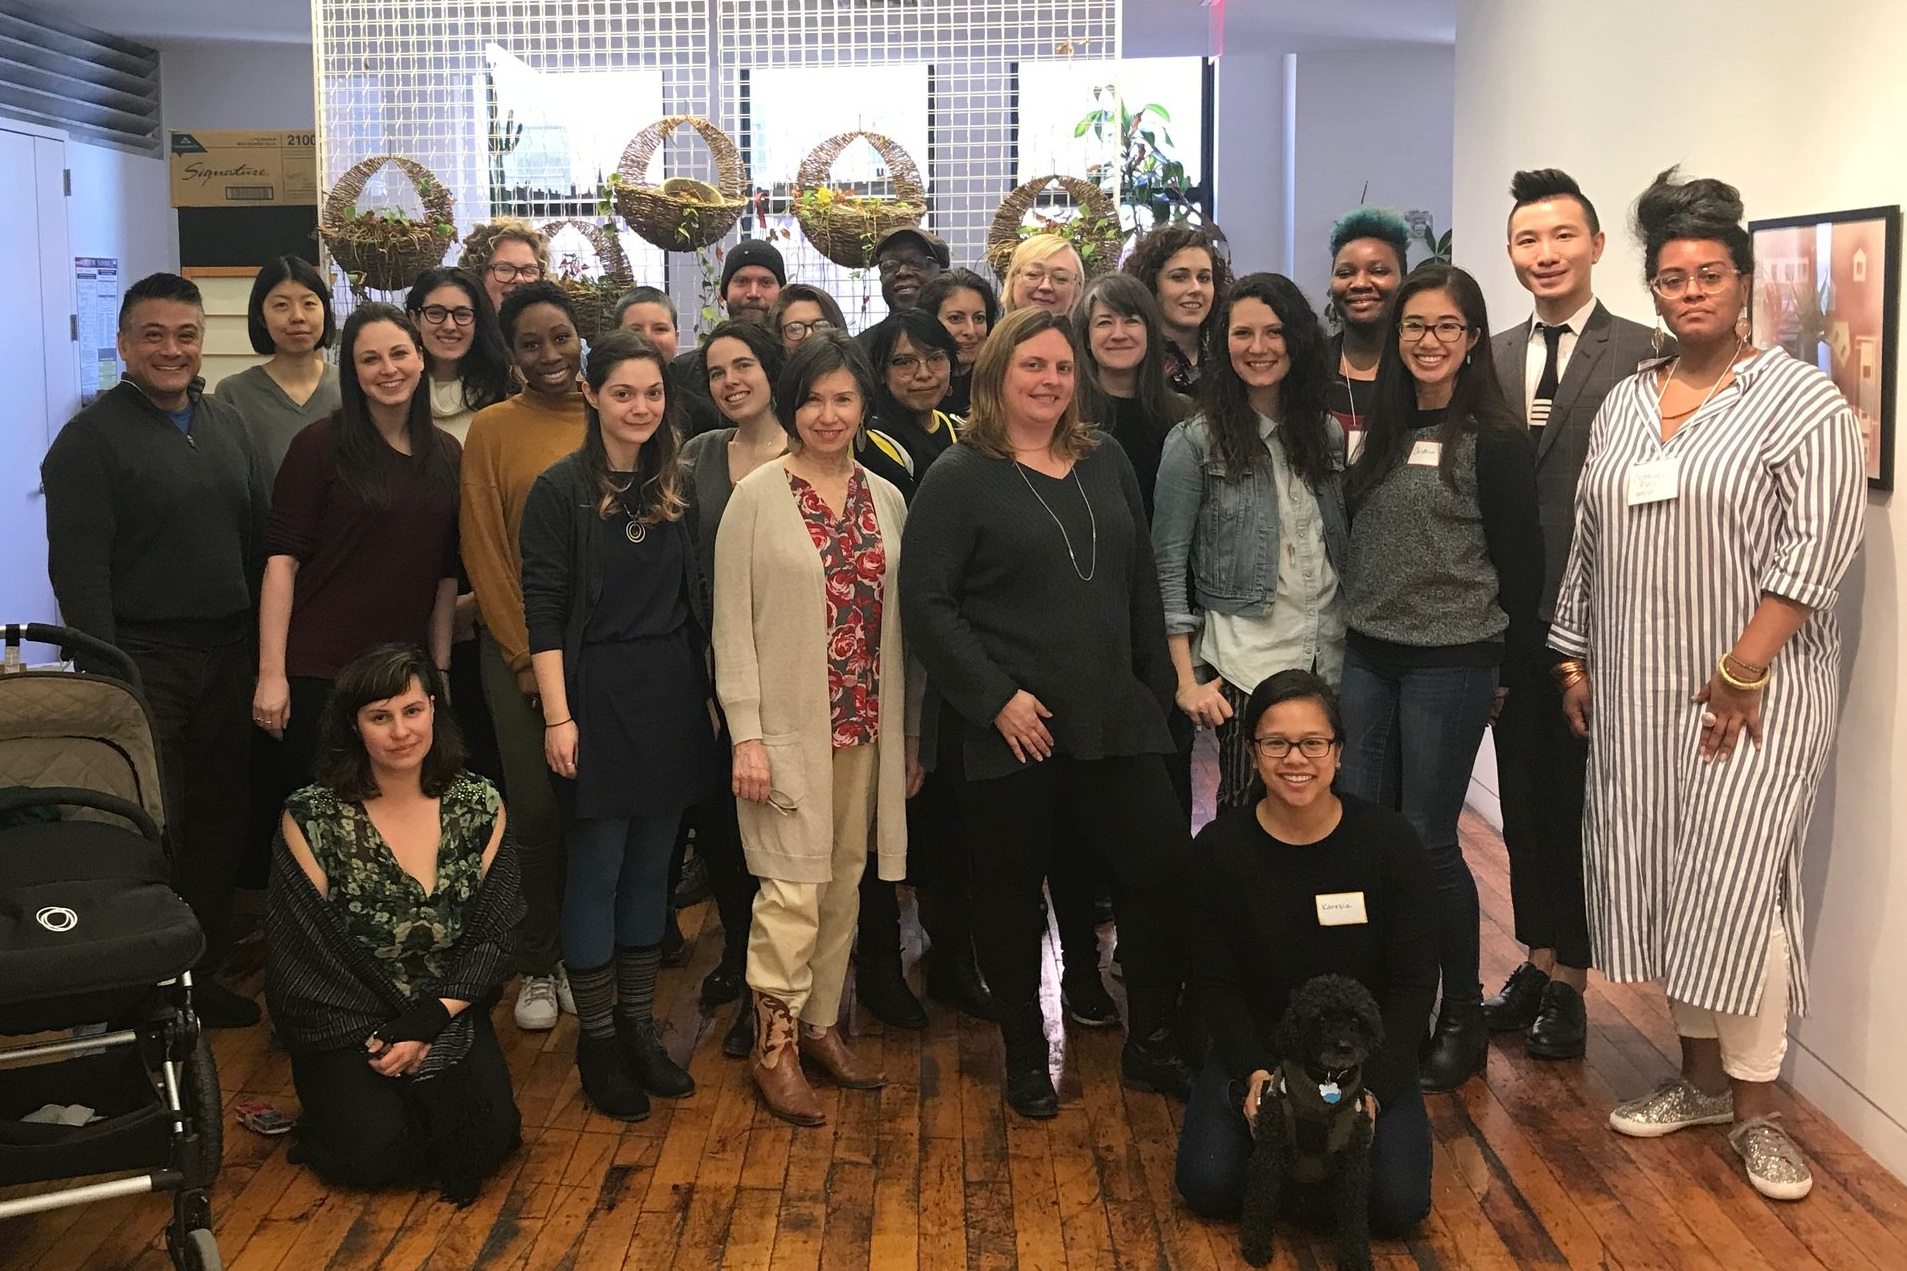 2019 Emerging Arts Leaders Cohort (Ariel standing far left)